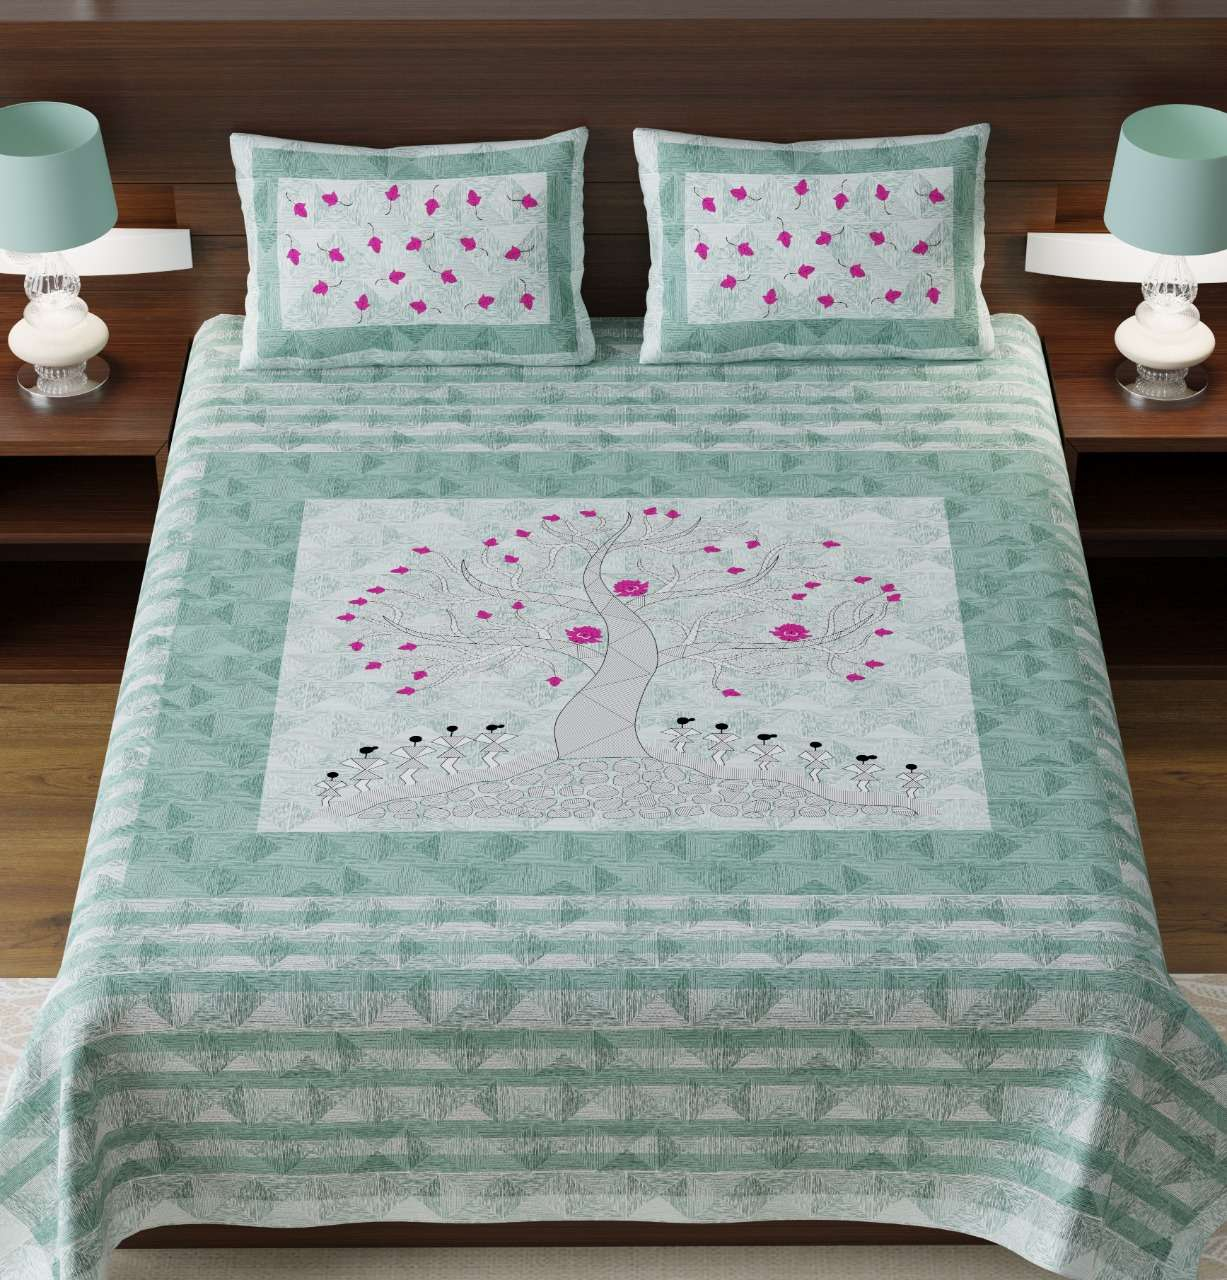 k4u launch rugs new collection in king size cotton bedsheets with pillow cover